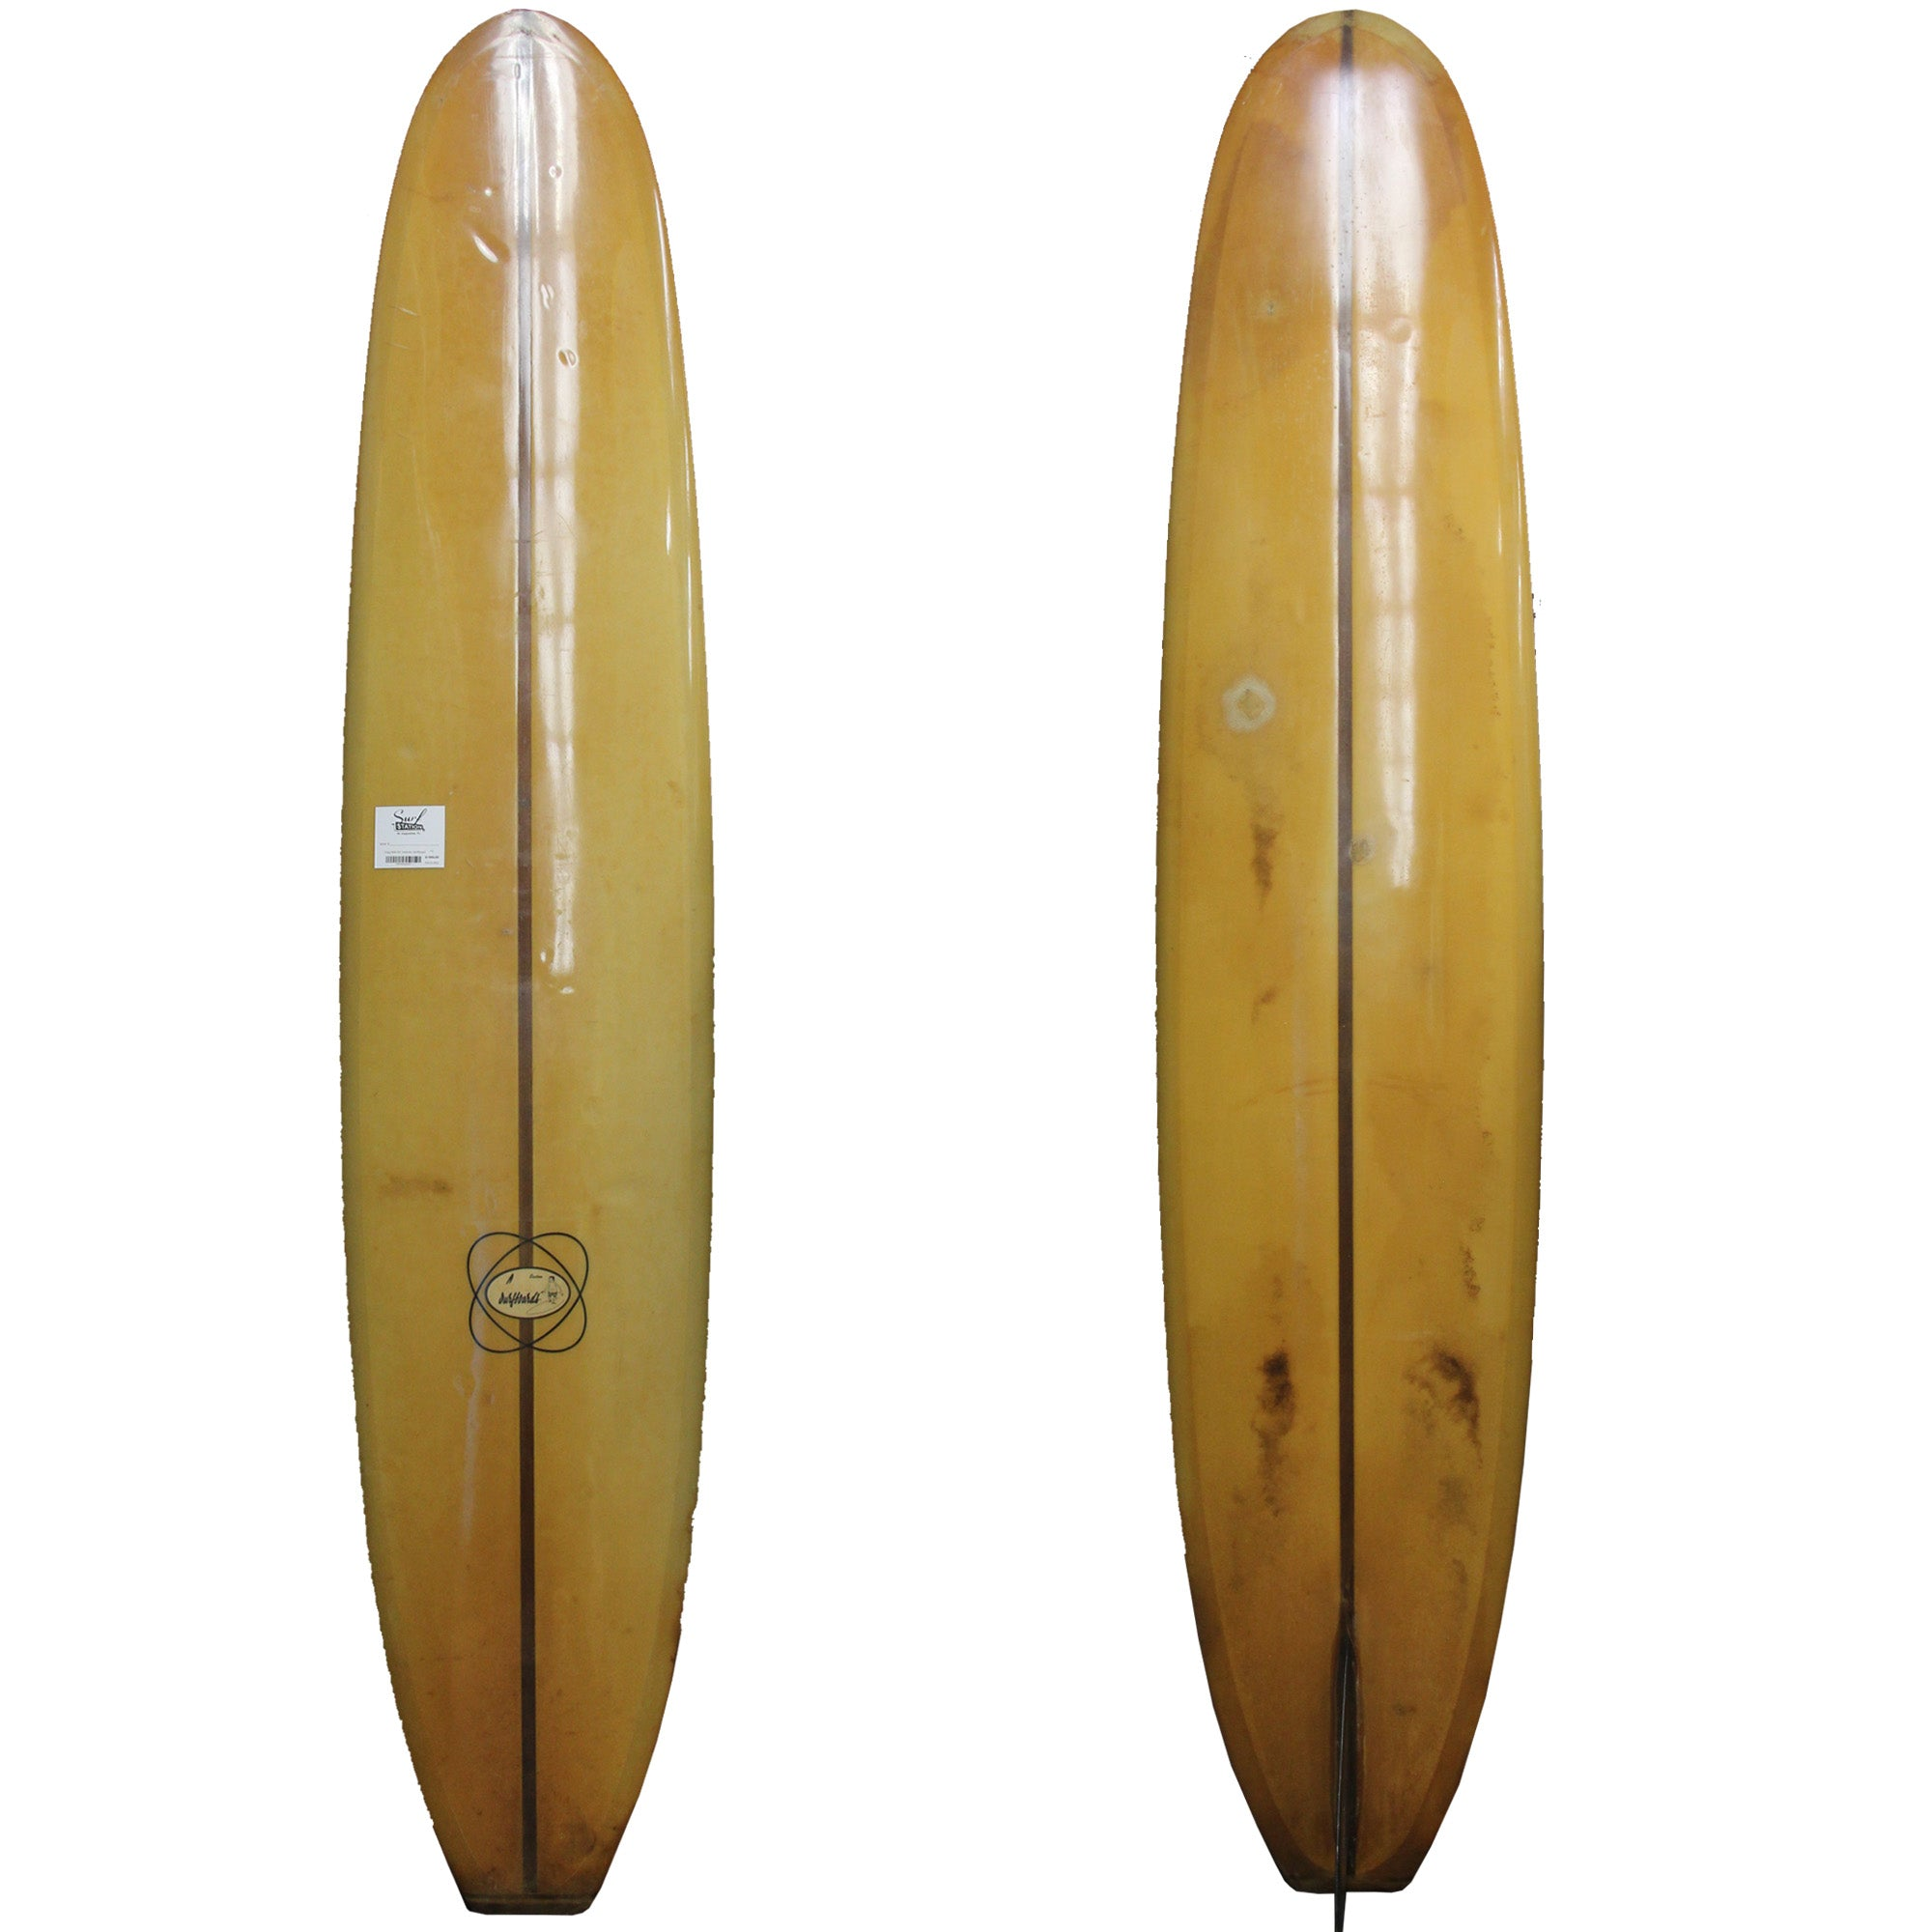 Greg Noll 9'4 Collector Surfboard